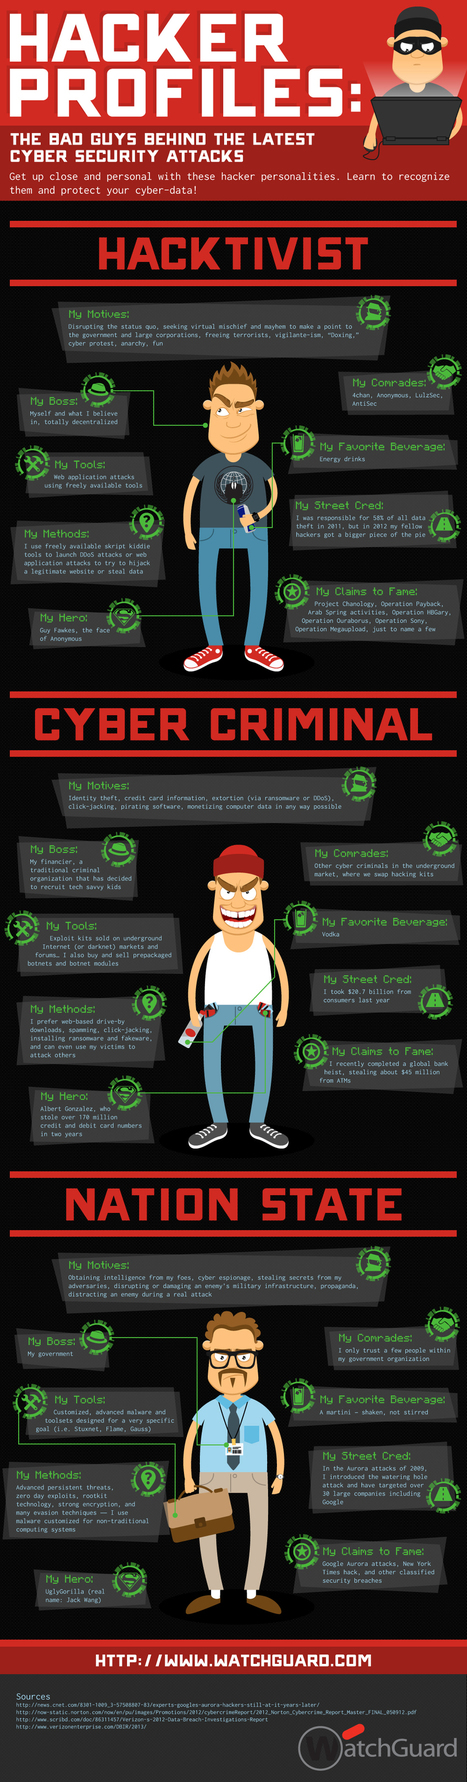 Hacker Profiles – The Bad Guys Of Online Security [Infographic] | Digital Culture | Scoop.it